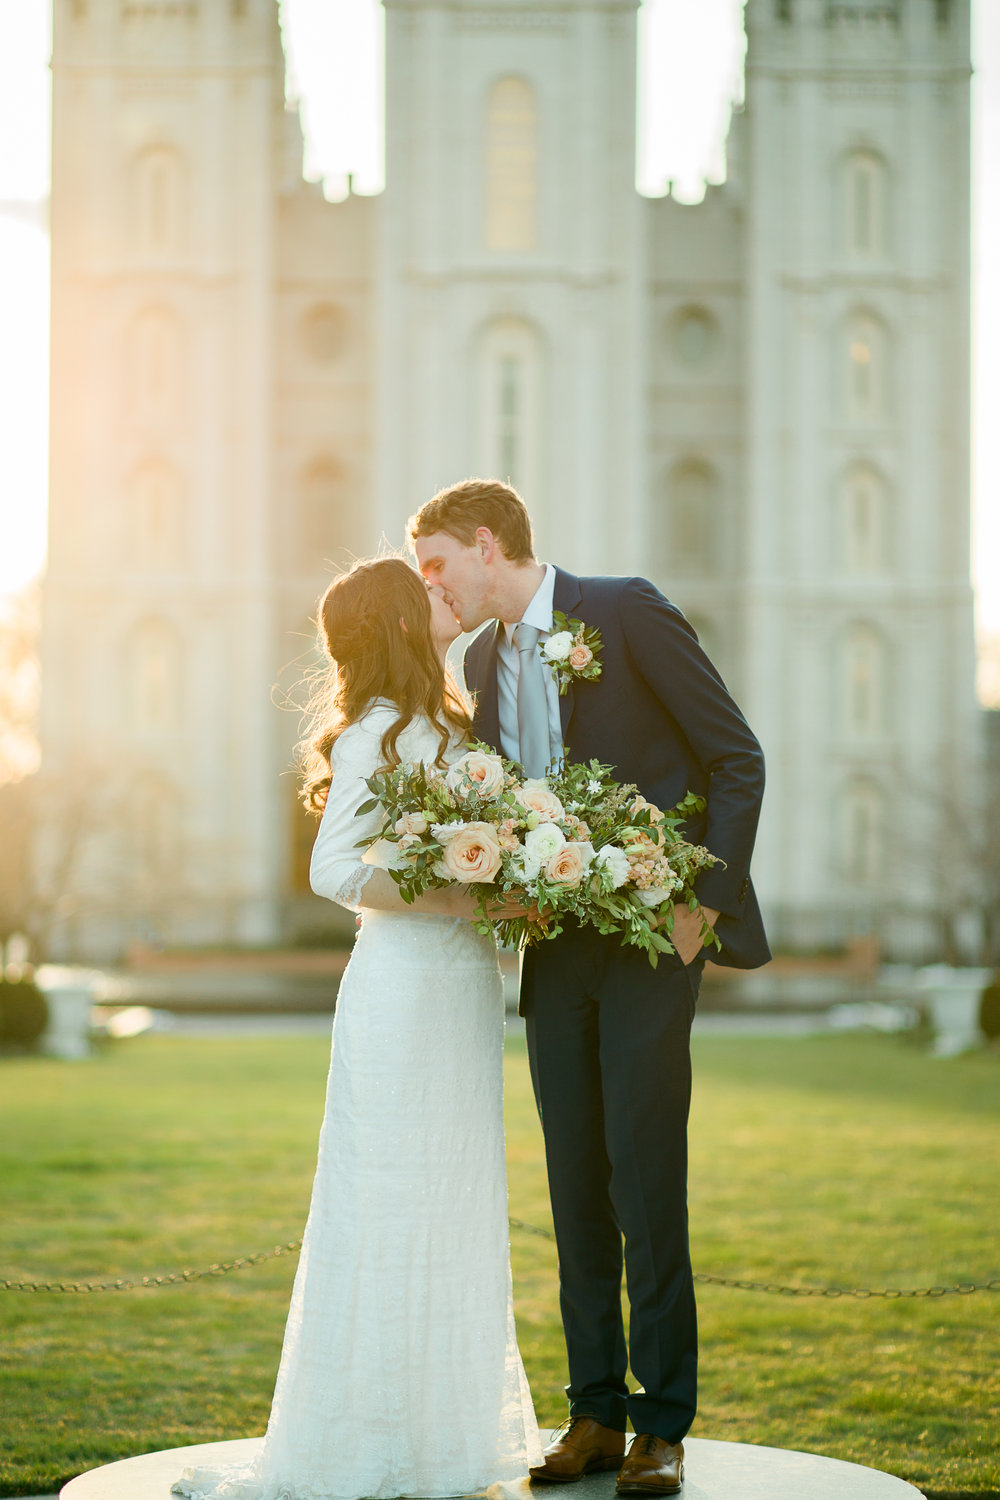 Eliza + Cody Bridals - Utah Wedding Photographer-43.jpg